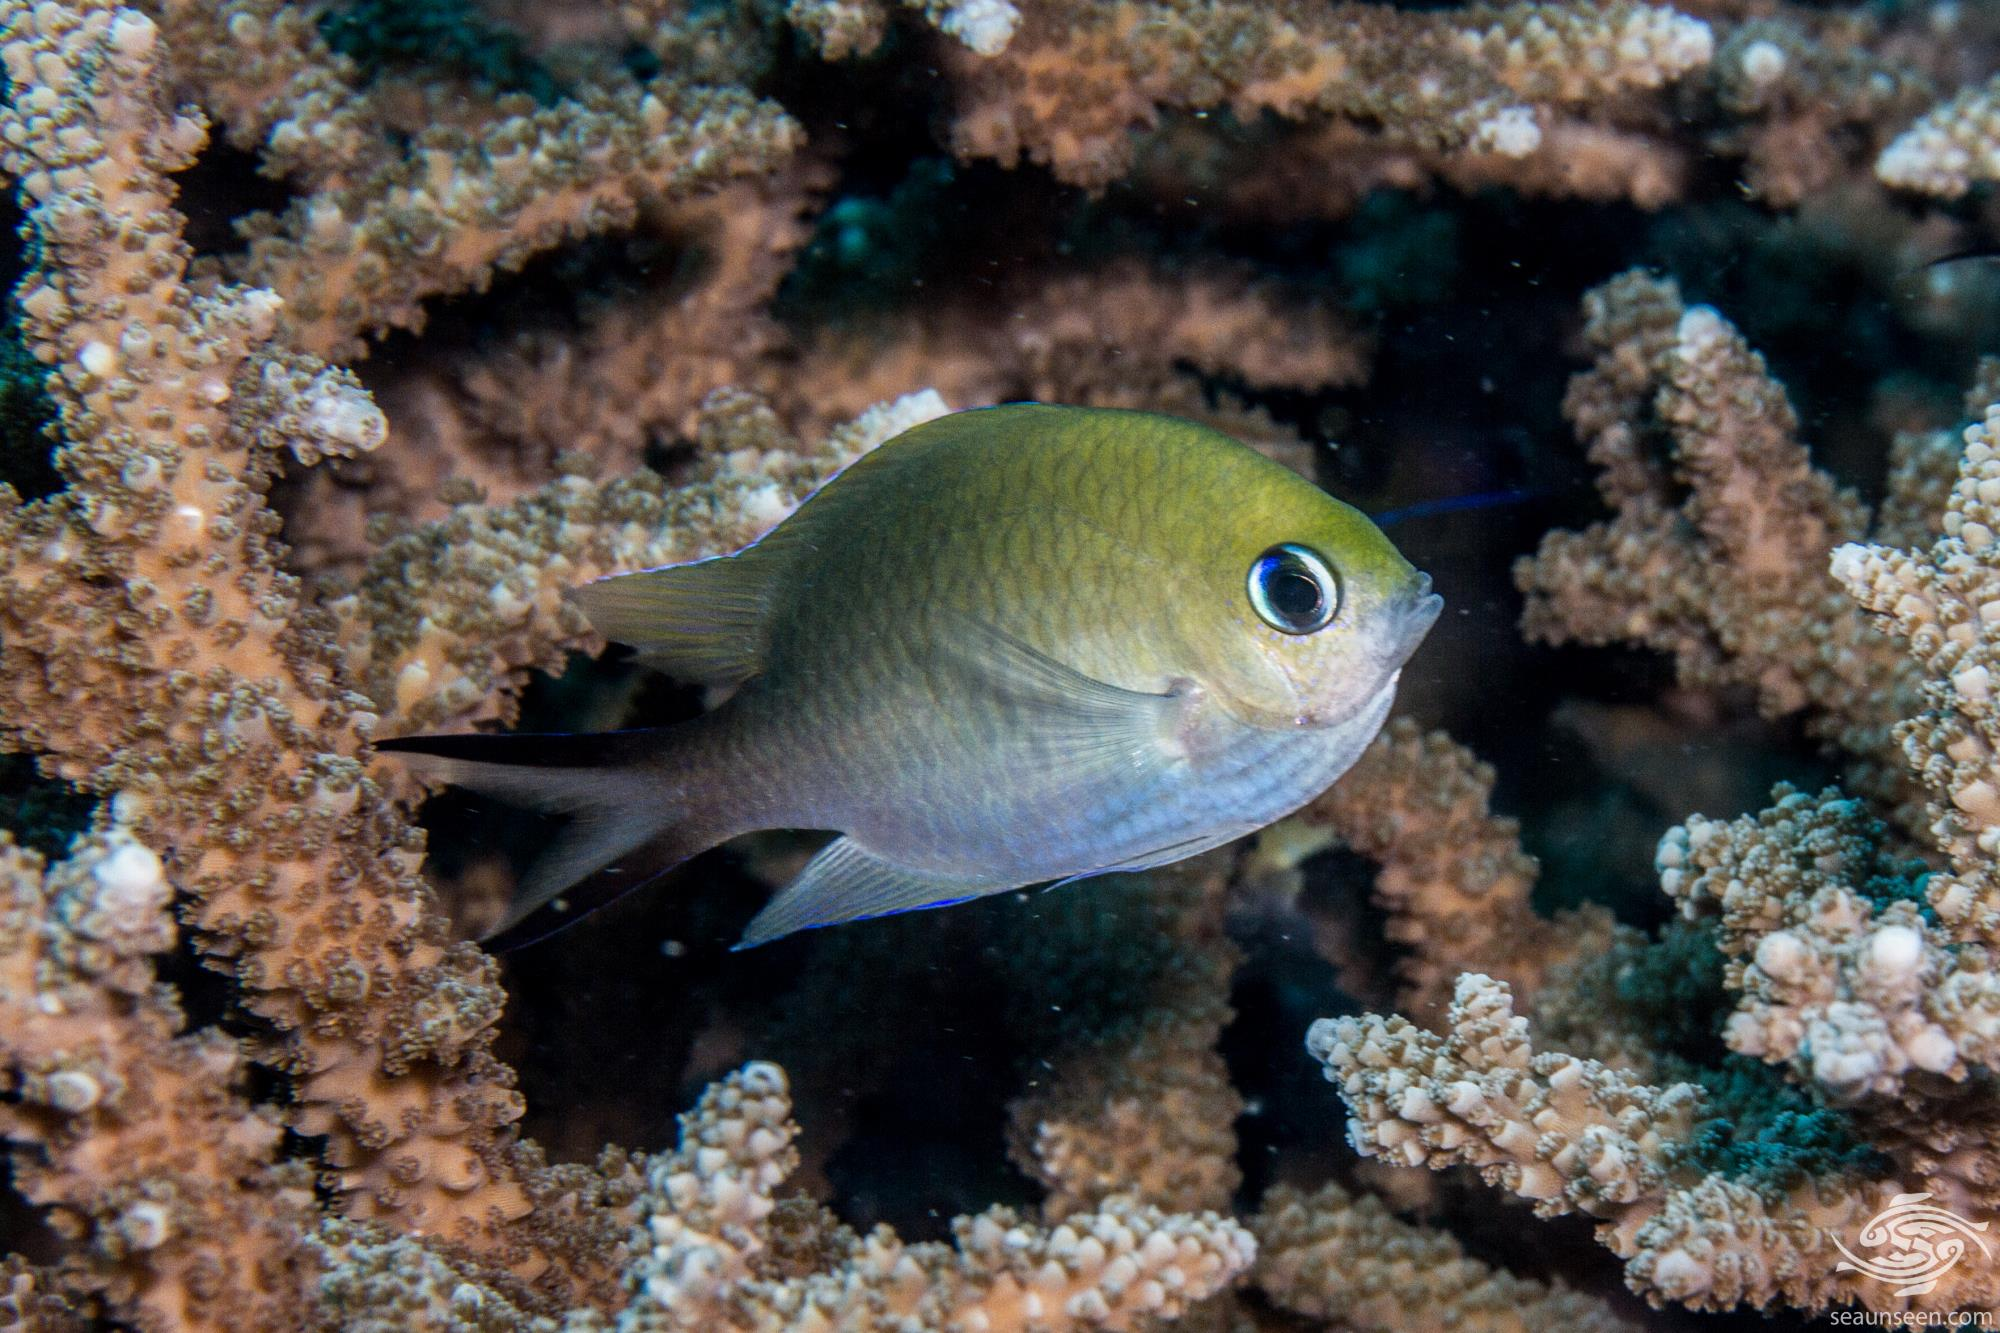 Ternate chromis Chromis ternatensis is also known as the Golden chromis and the Swallowtail Puller